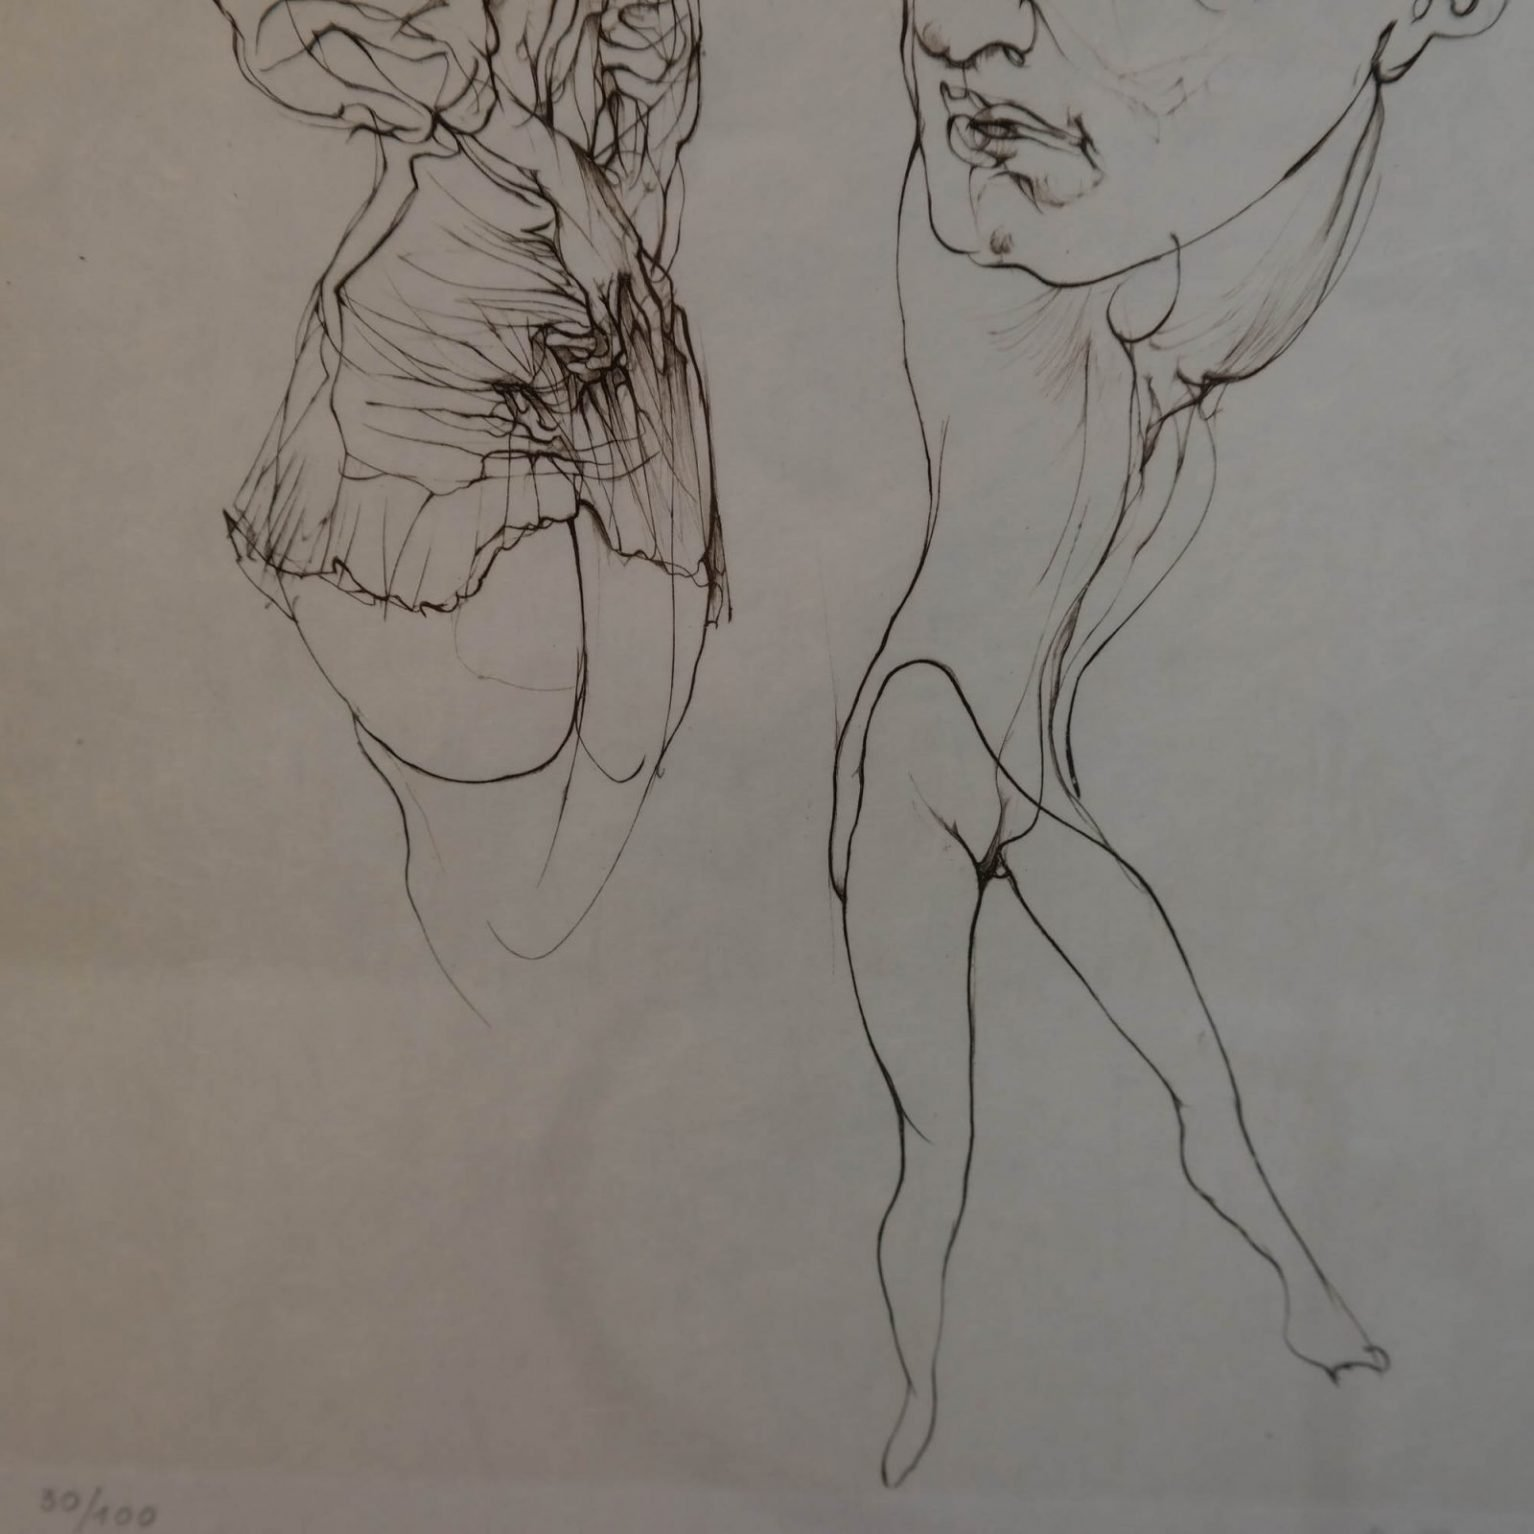 Hans Bellmer (1902-1975) - De man met de pet